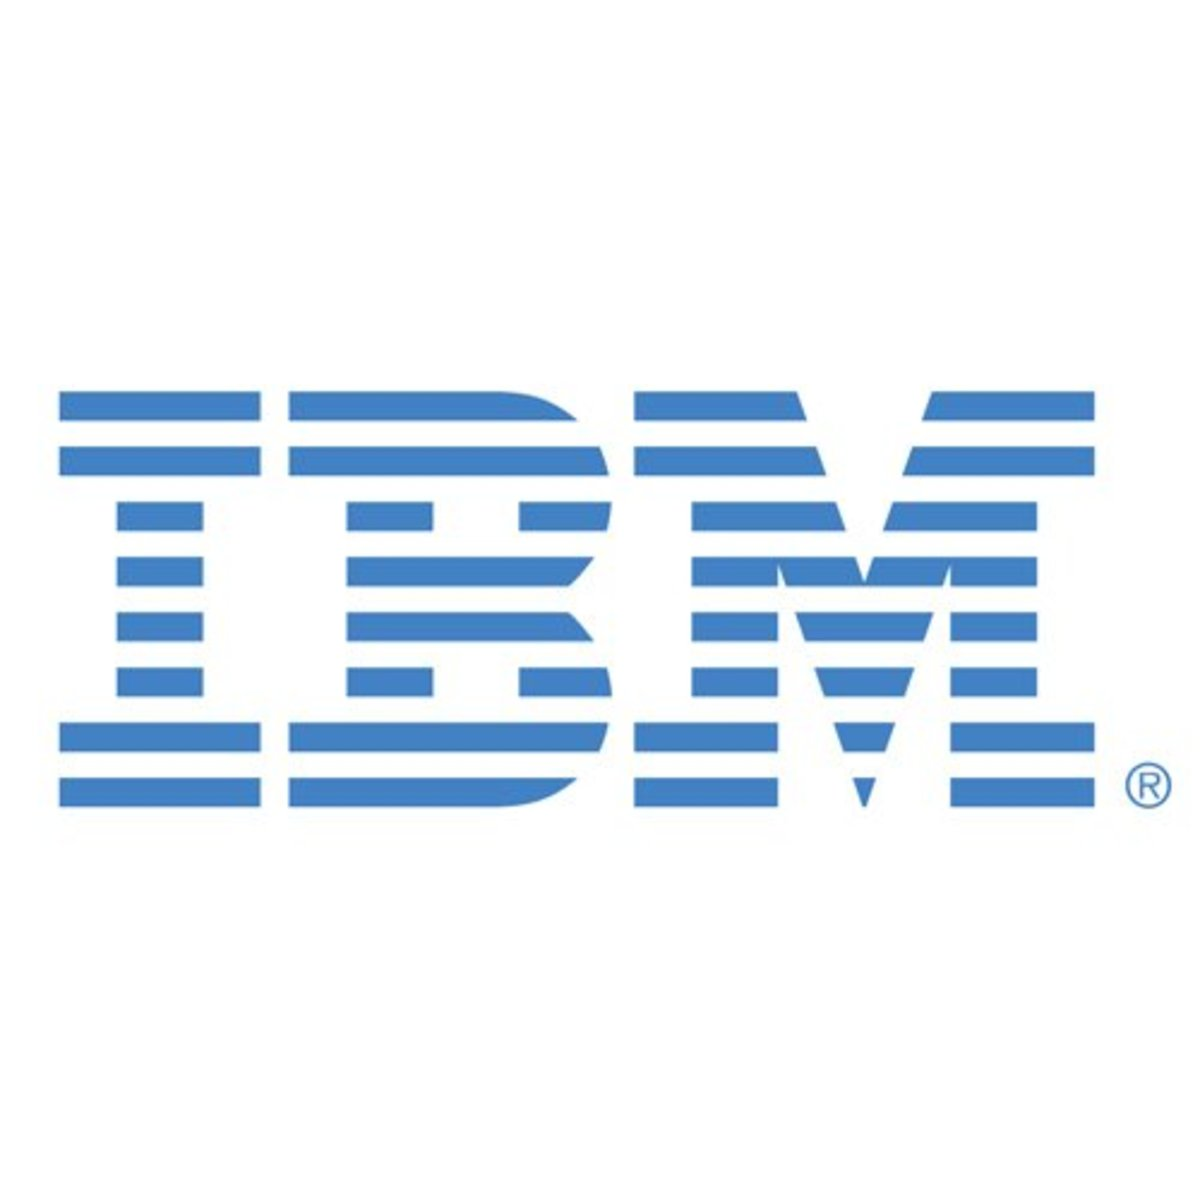 Decline of the IBM Company